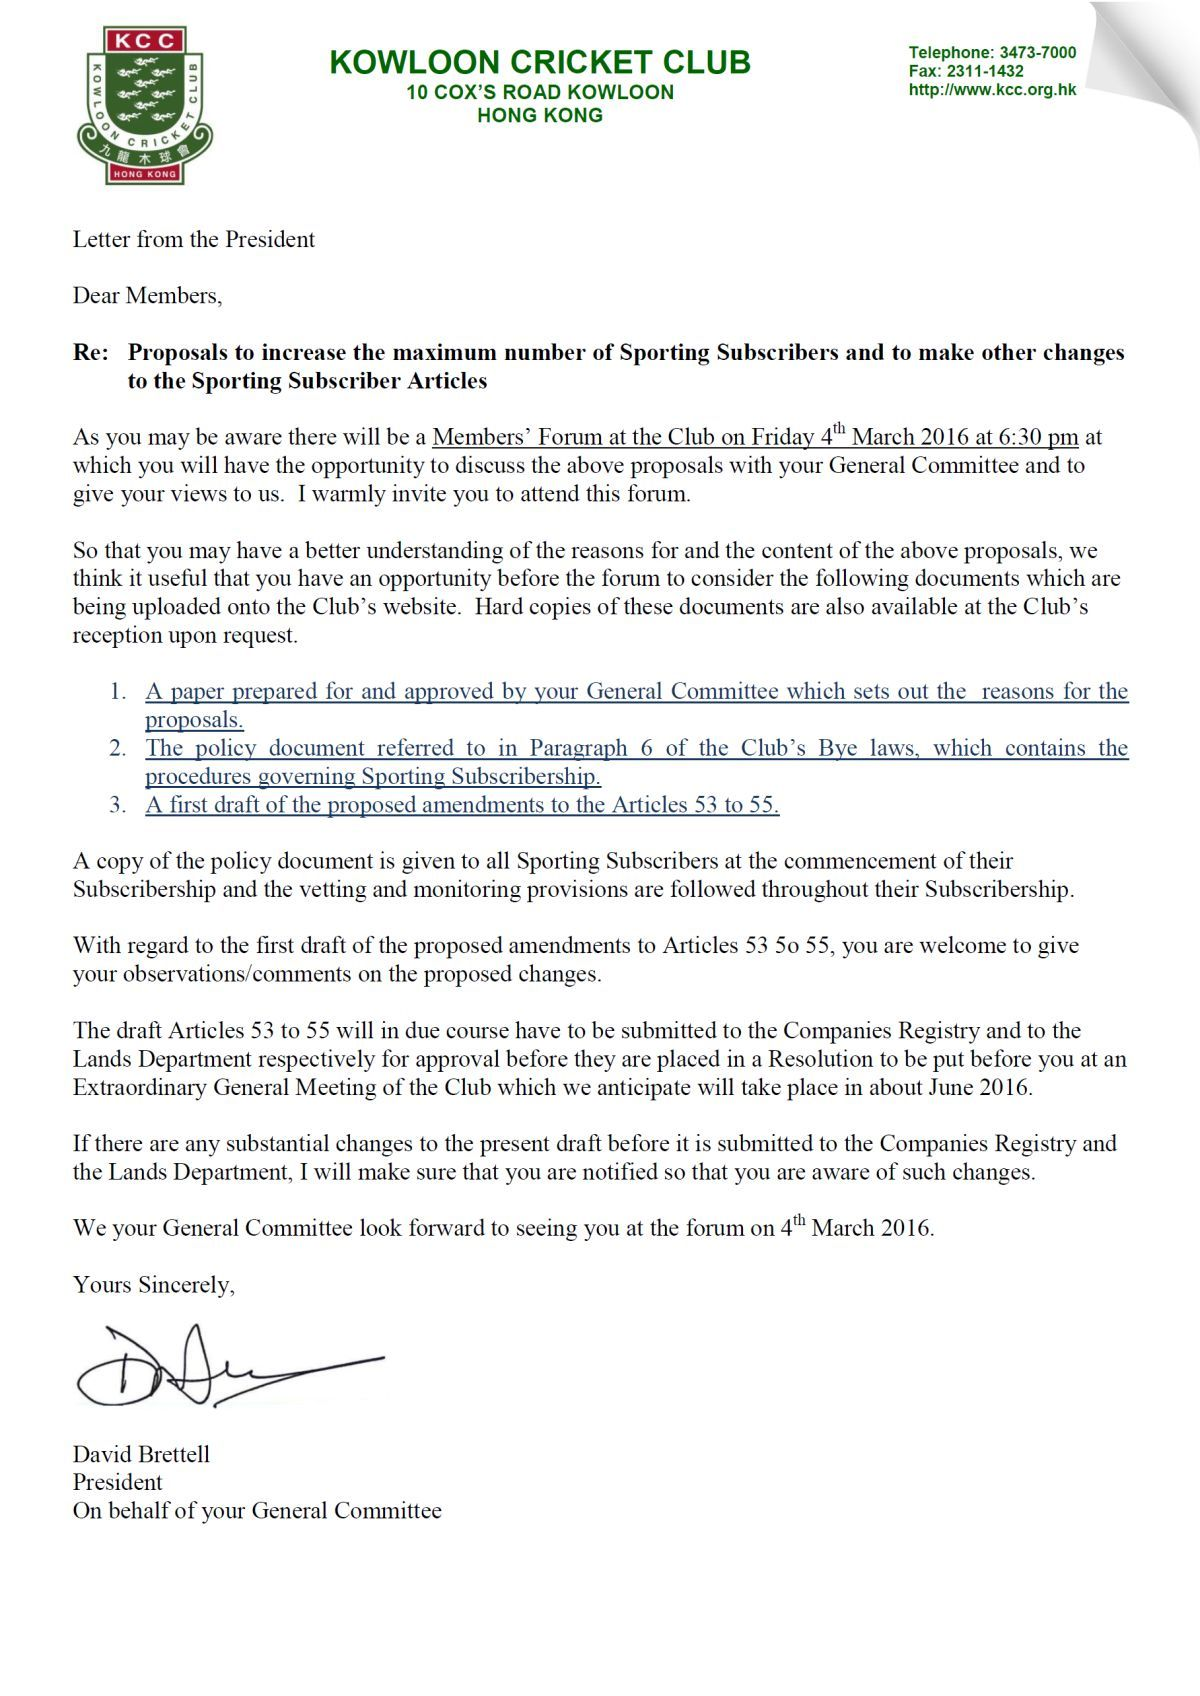 Letter from the President || Kowloon Cricket Club